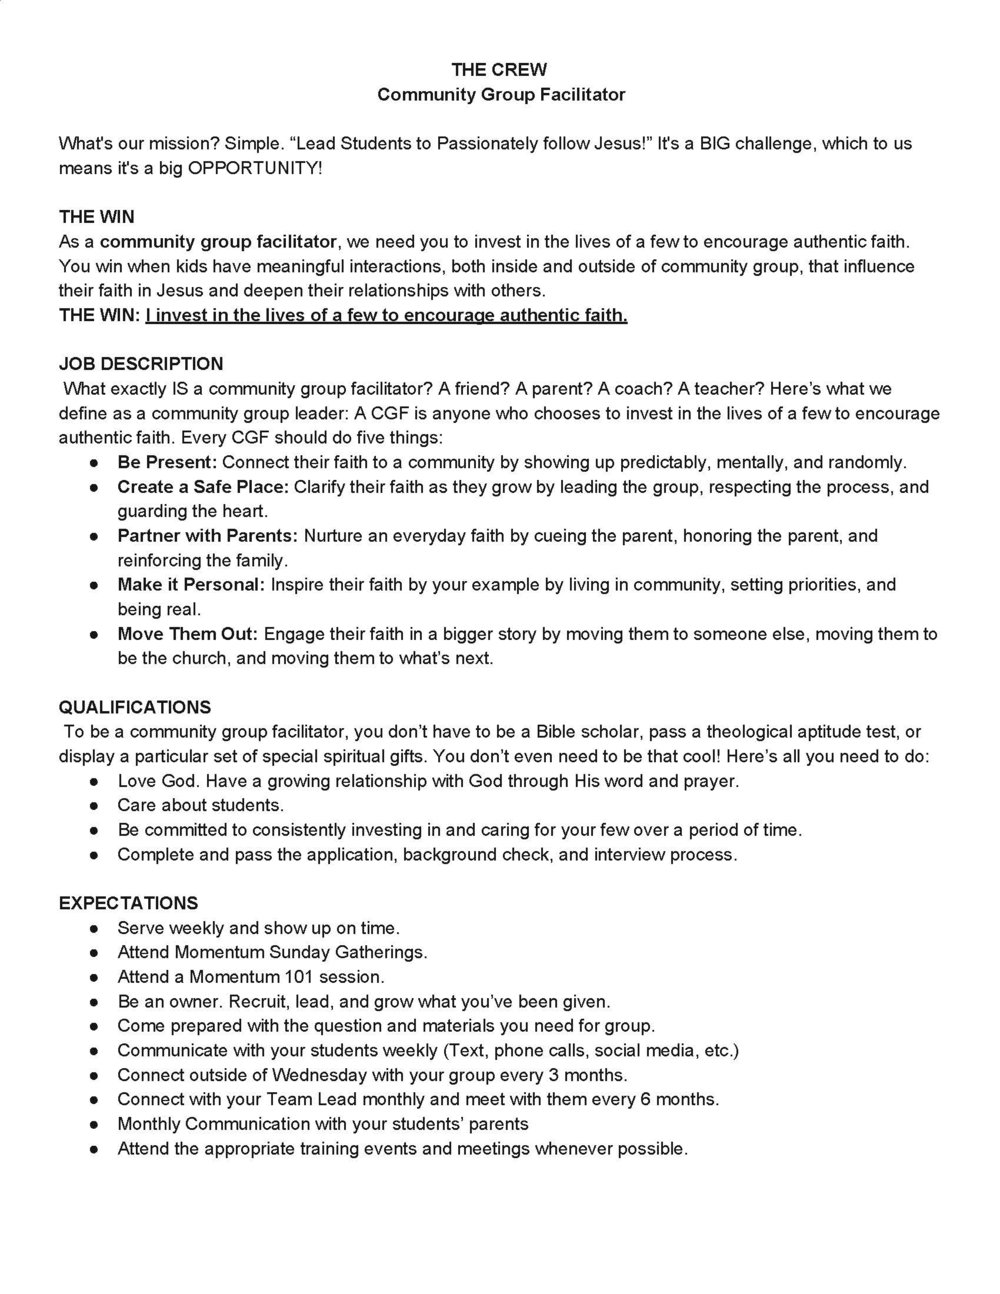 Leader Job Description & Expectations Page 1